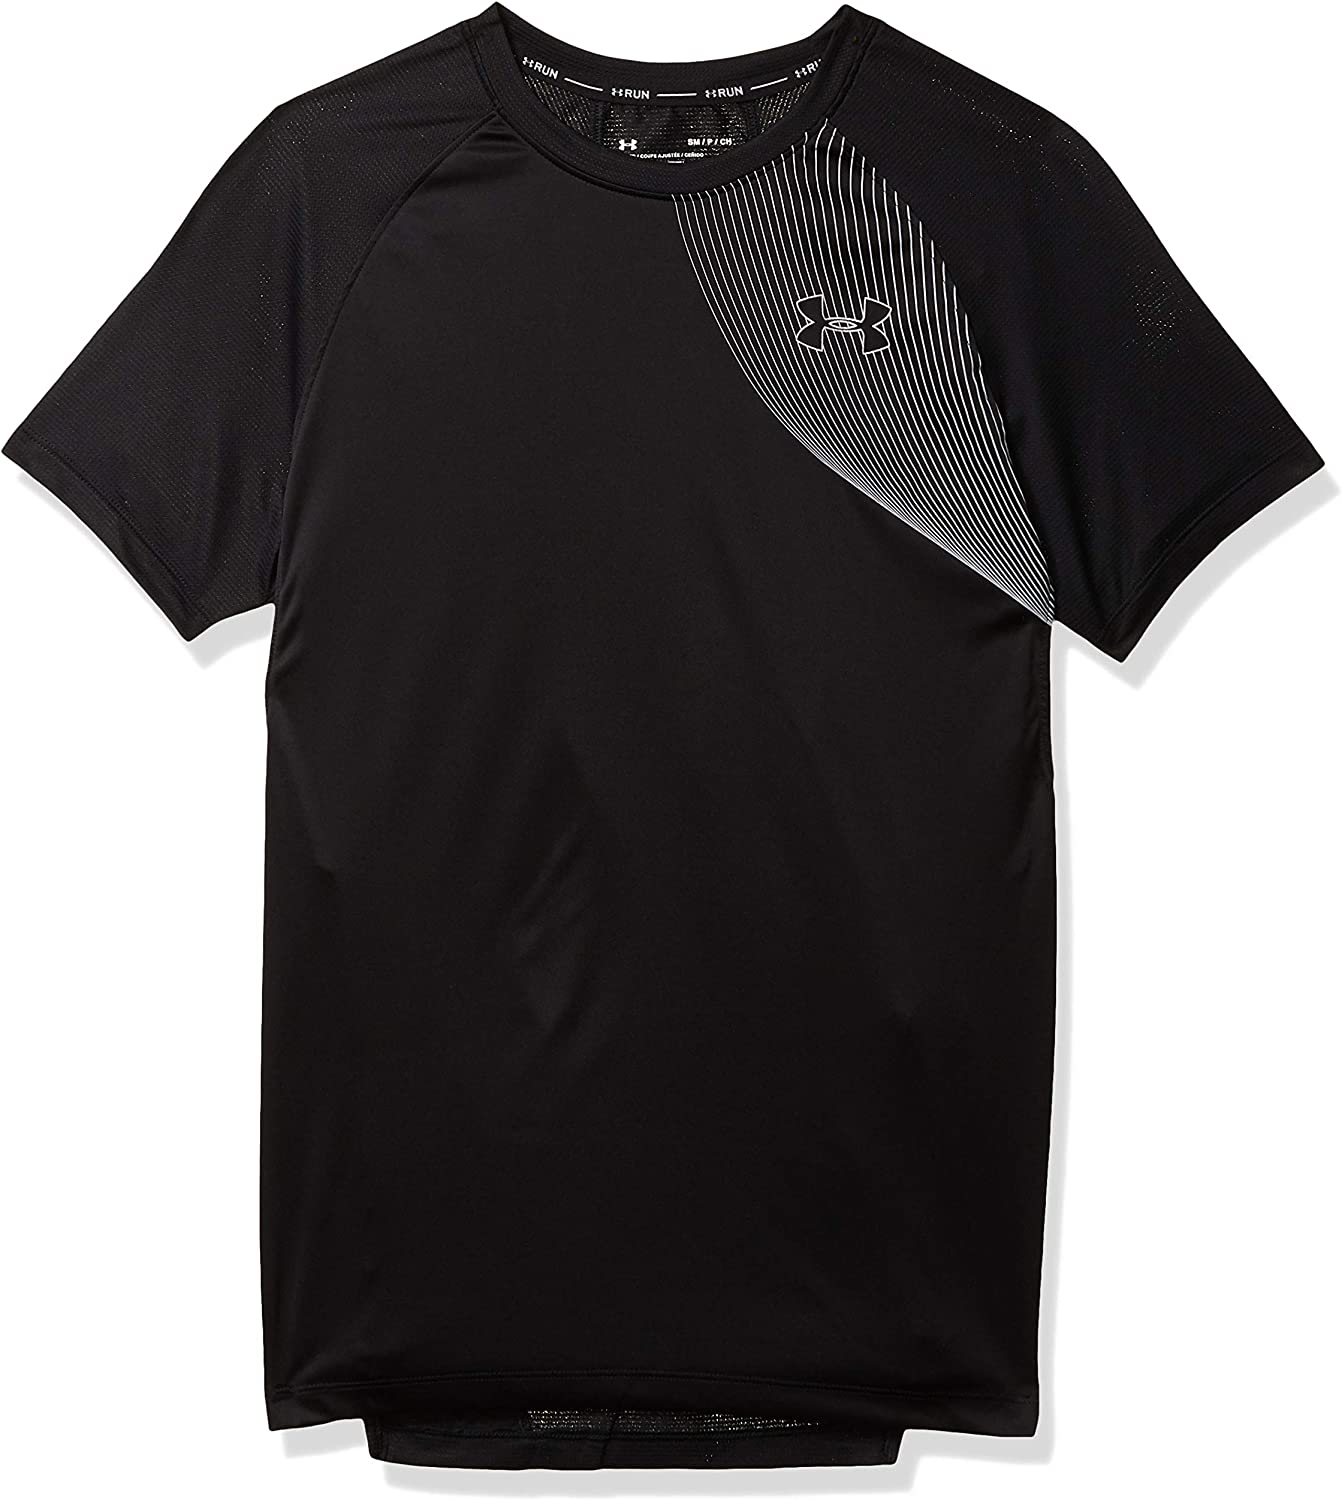 Under Armour Mens Qualifier Iso-chill Short Sleeve Running T-shirt